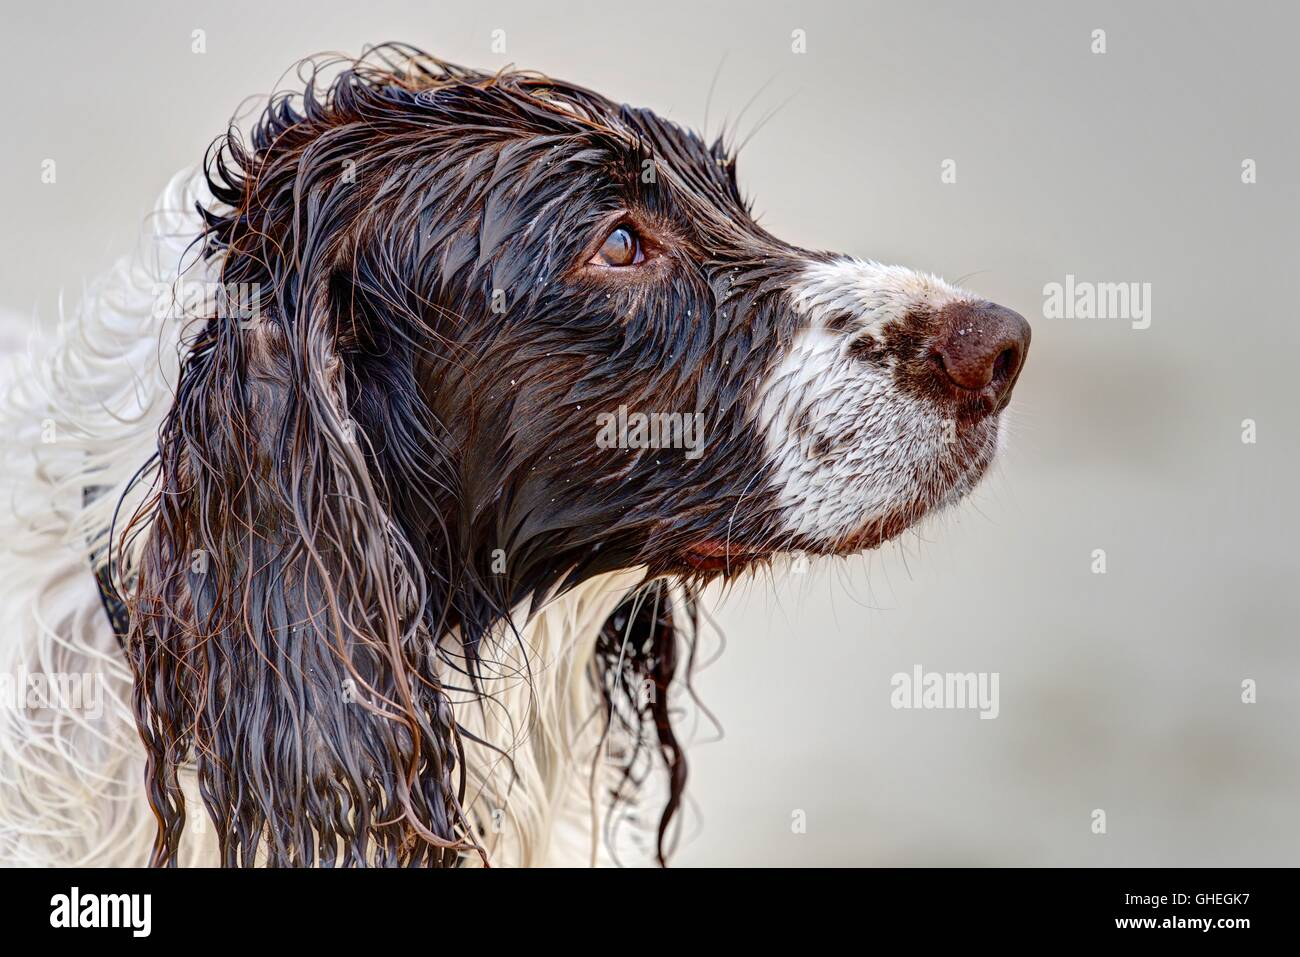 A Springer Spaniel (head only) soaked through with an expression of sorrow about going into the sea against the Stock Photo